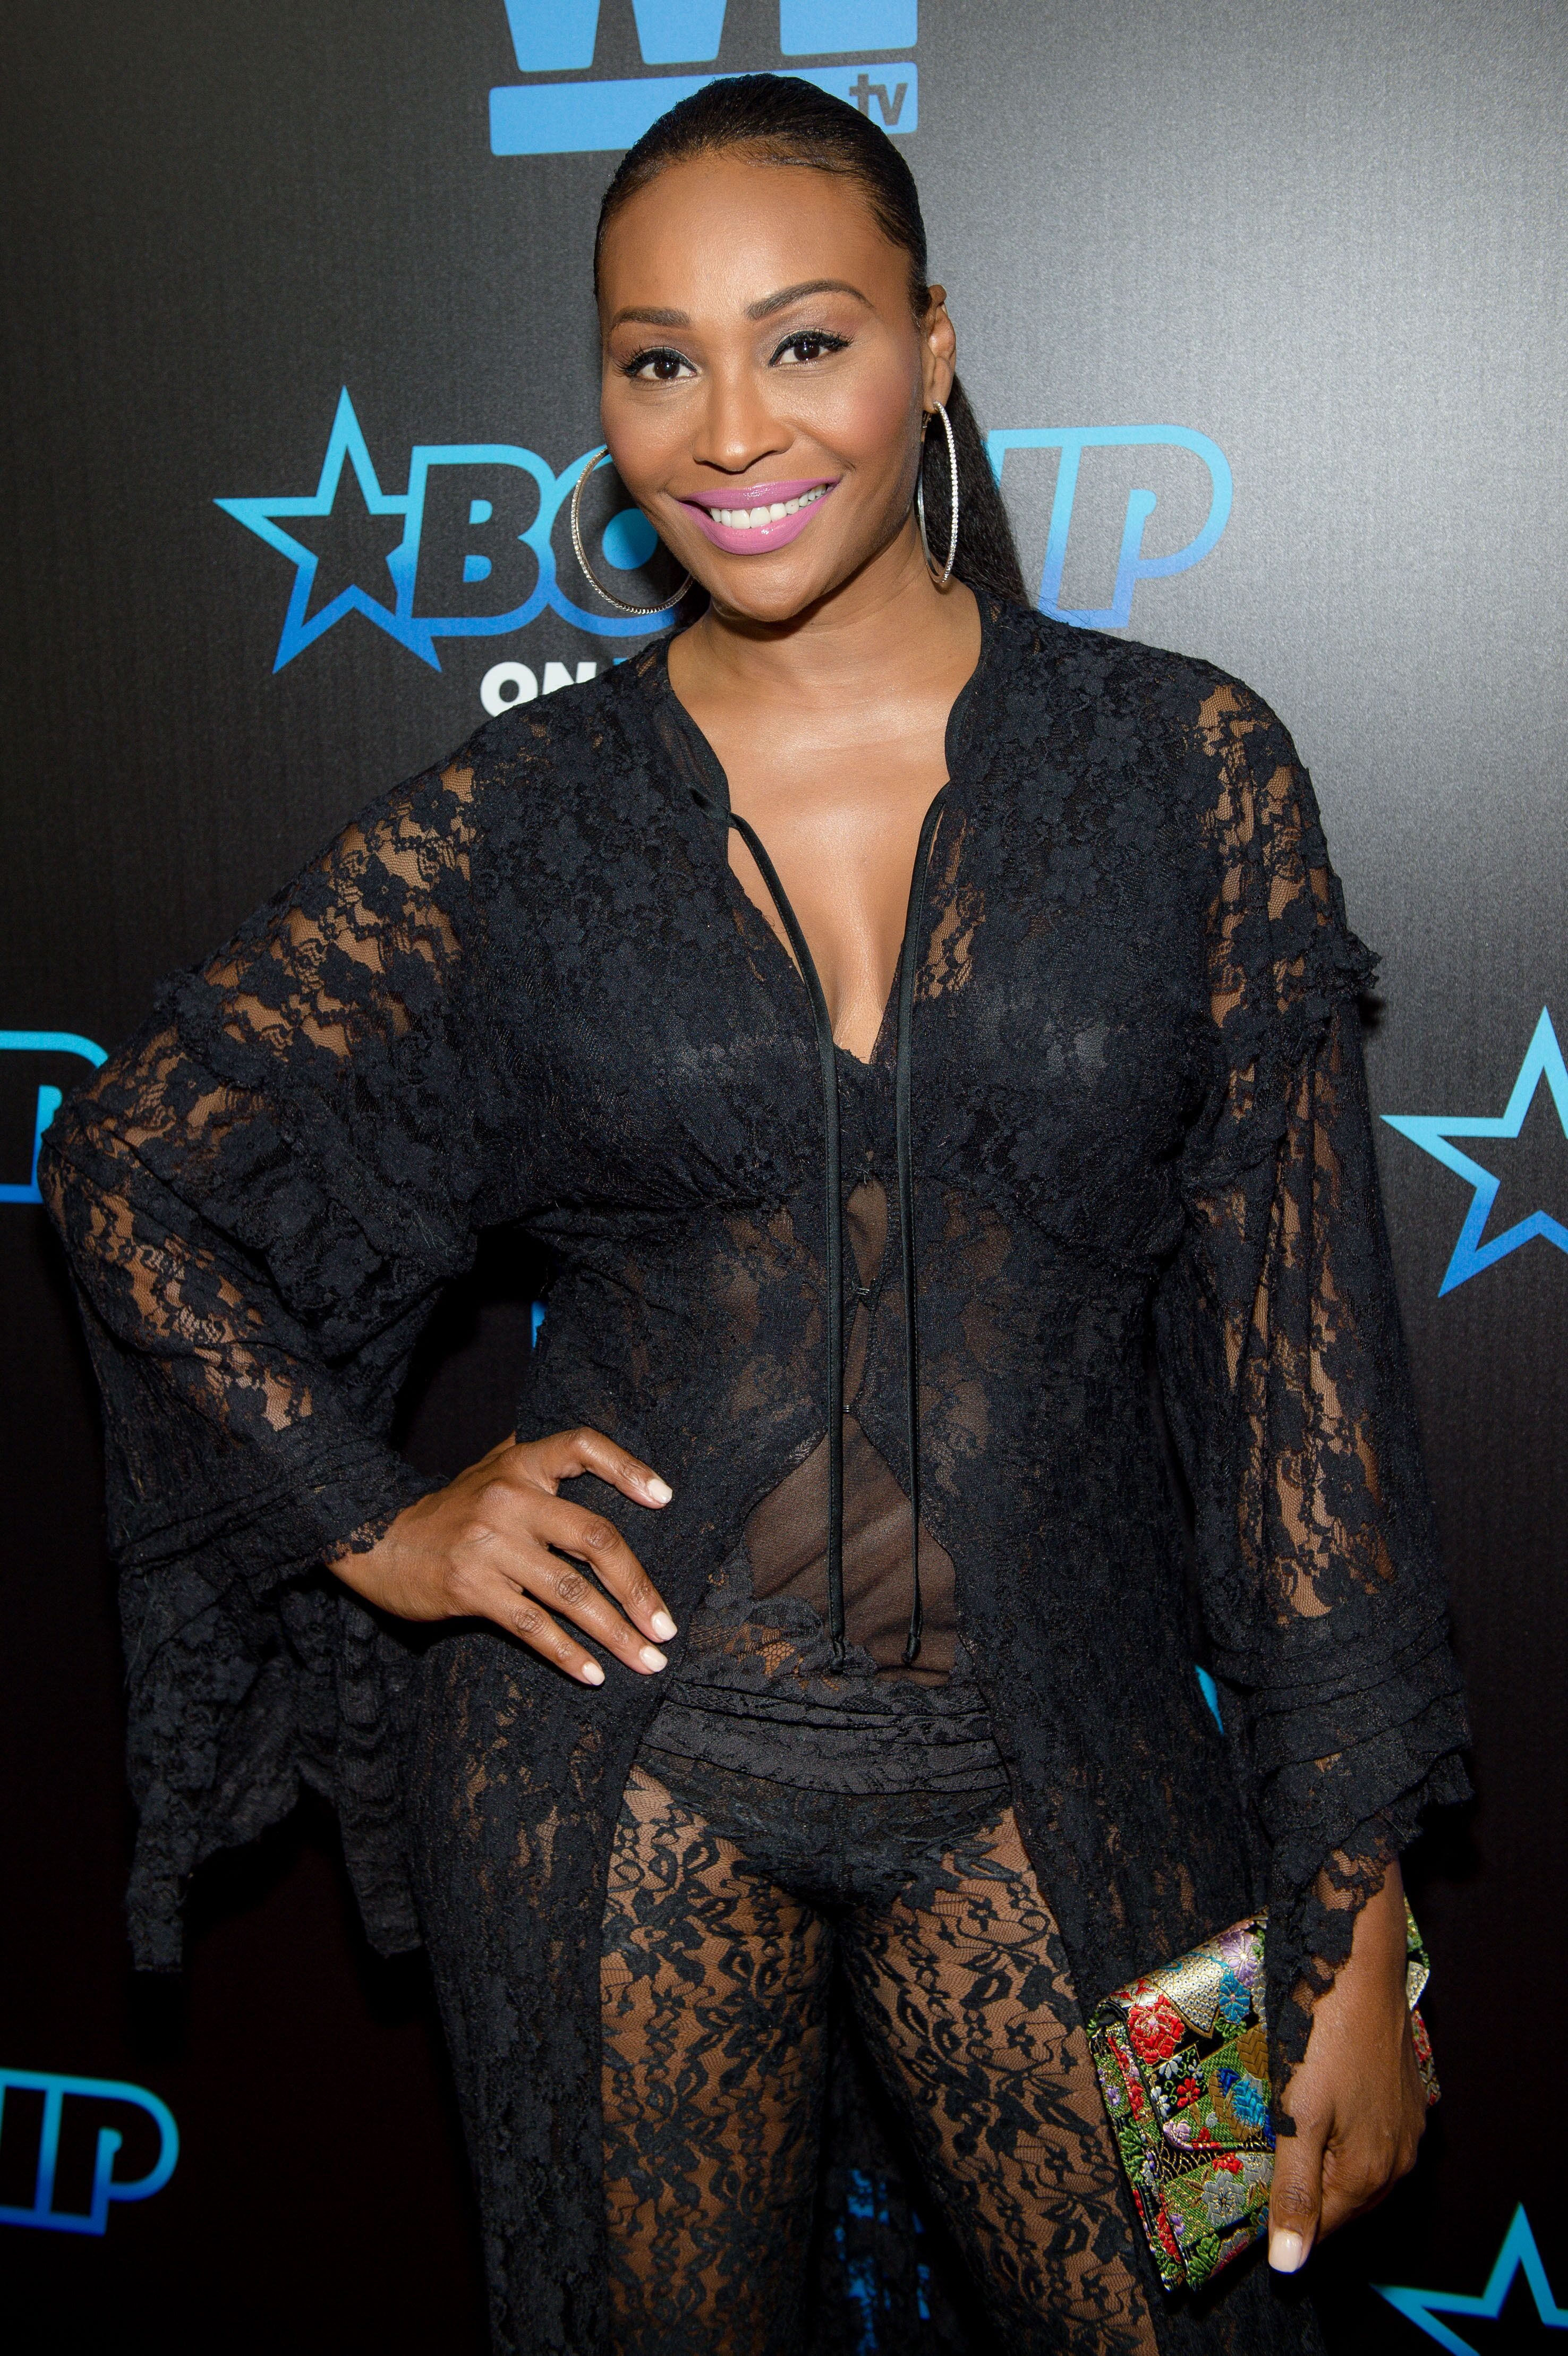 RHOA reality star Cynthia Bailey at a Bossip event/ Source: Getty Images